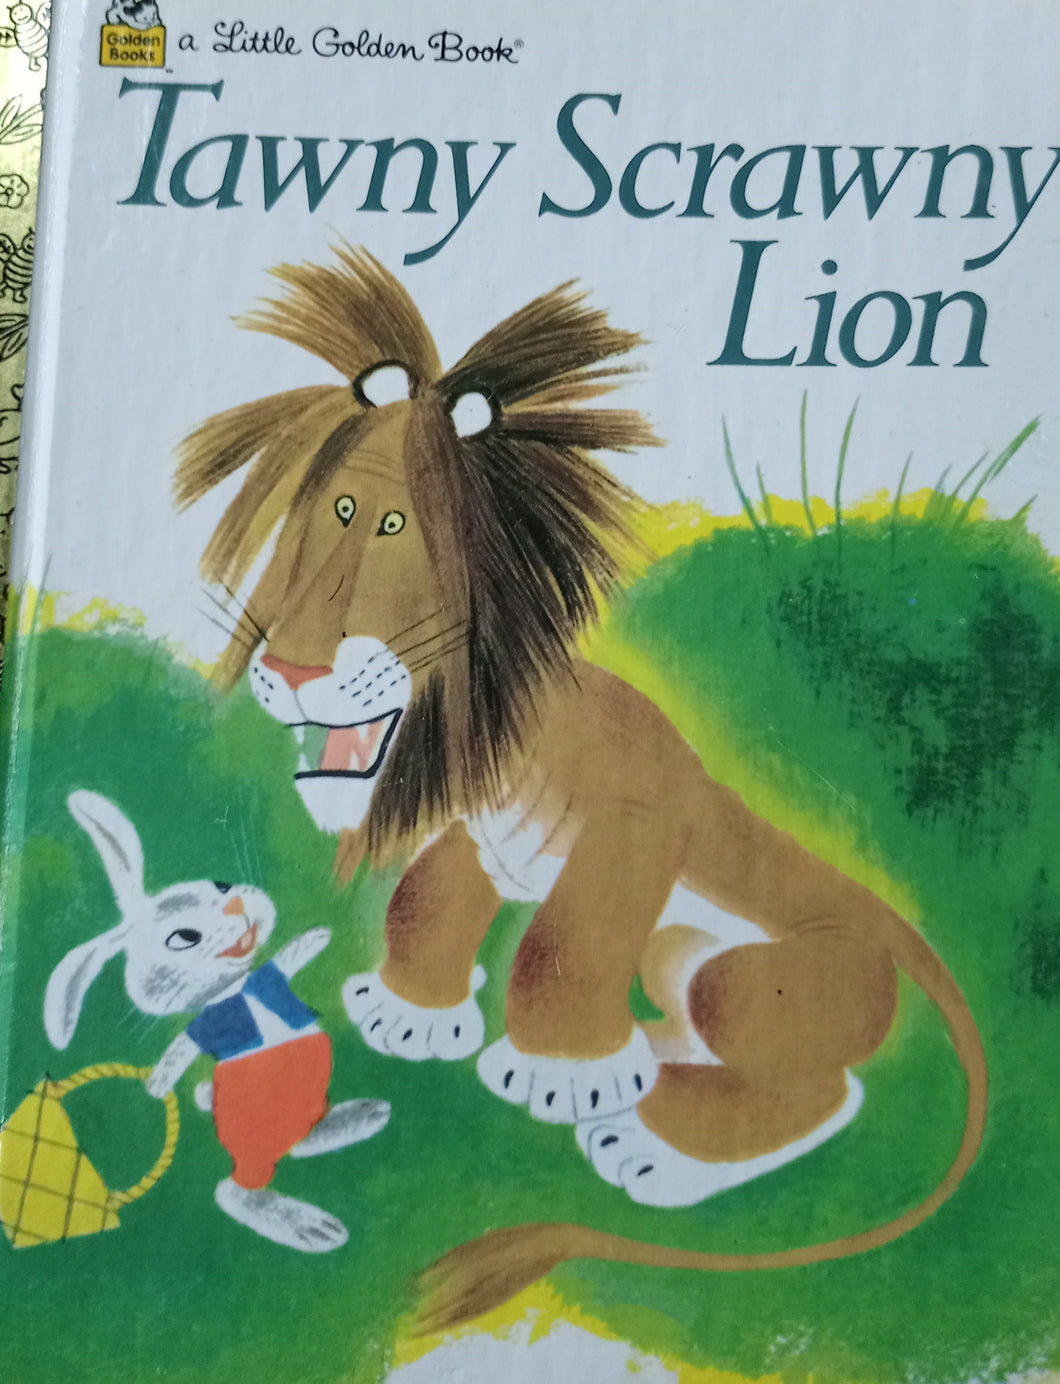 A little golden book Tawny Scrawny Lion